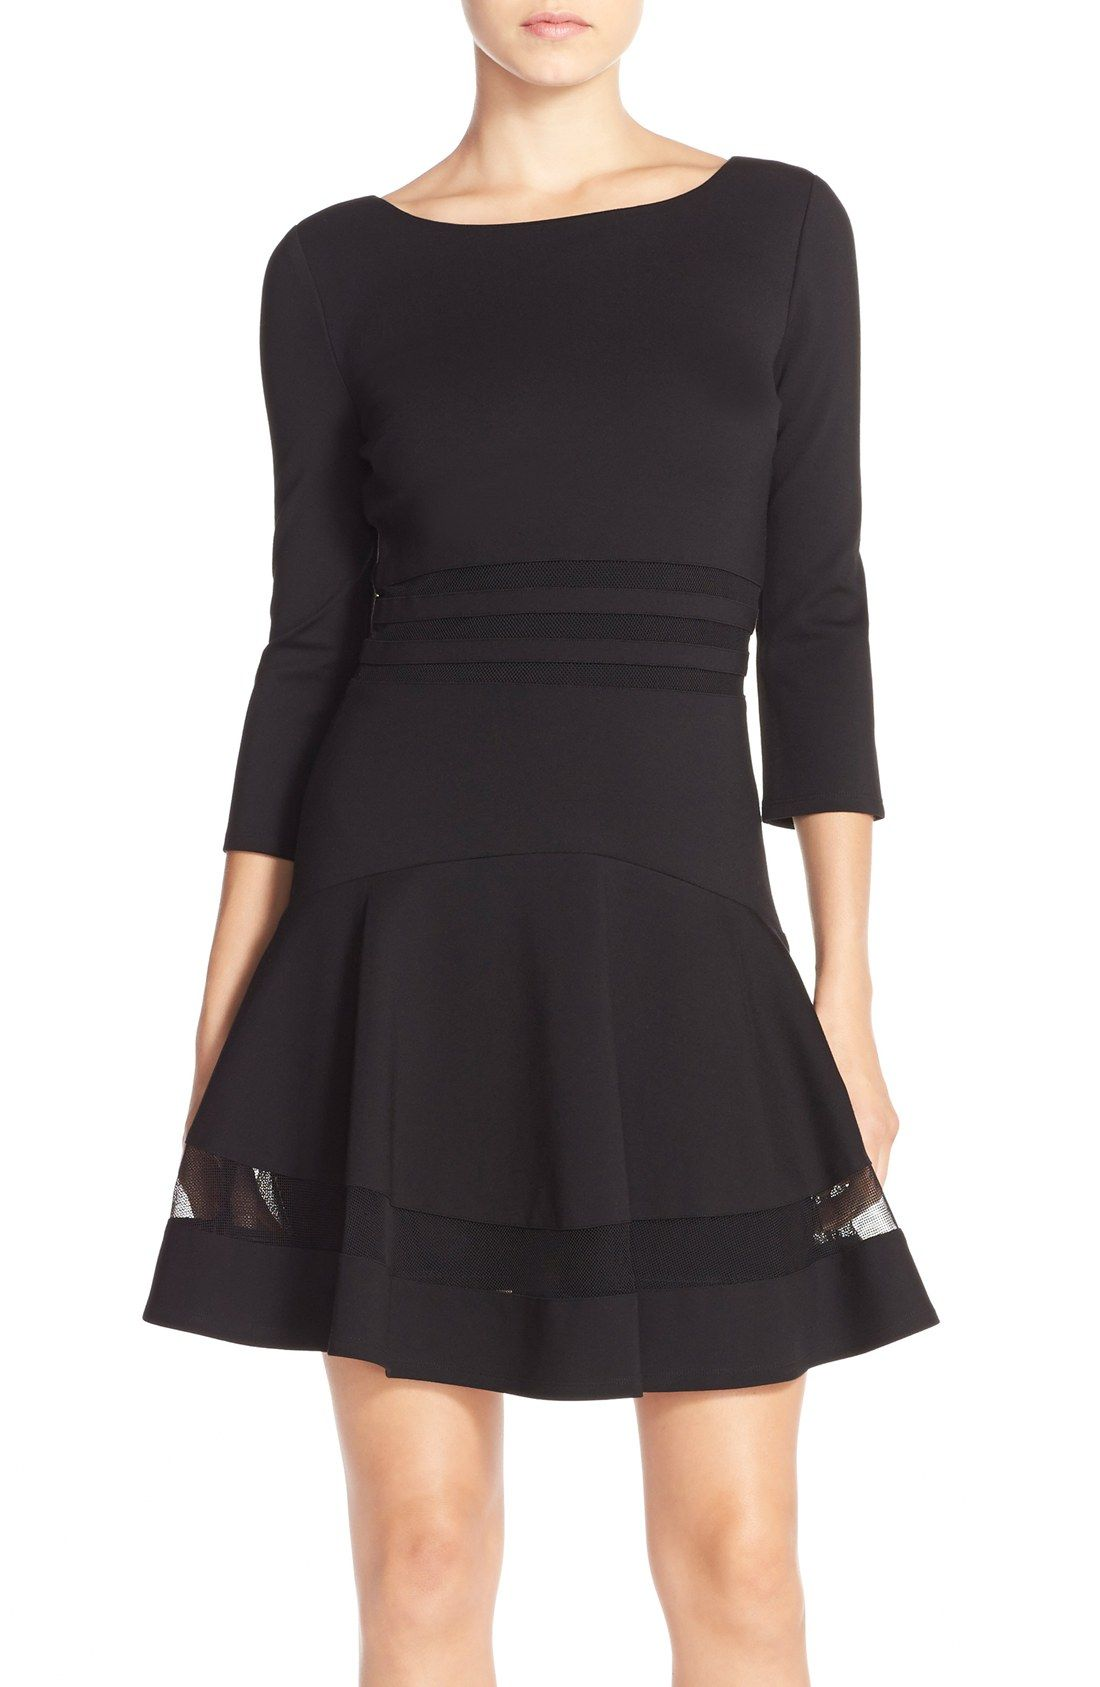 Erin Erin Fetherston Mesh Inset Ponte Fit Flare Dress Nordstrom Fit And Flare Cocktail Dress Fit Flare Dress Little Black Cocktail Dress [ 1687 x 1100 Pixel ]